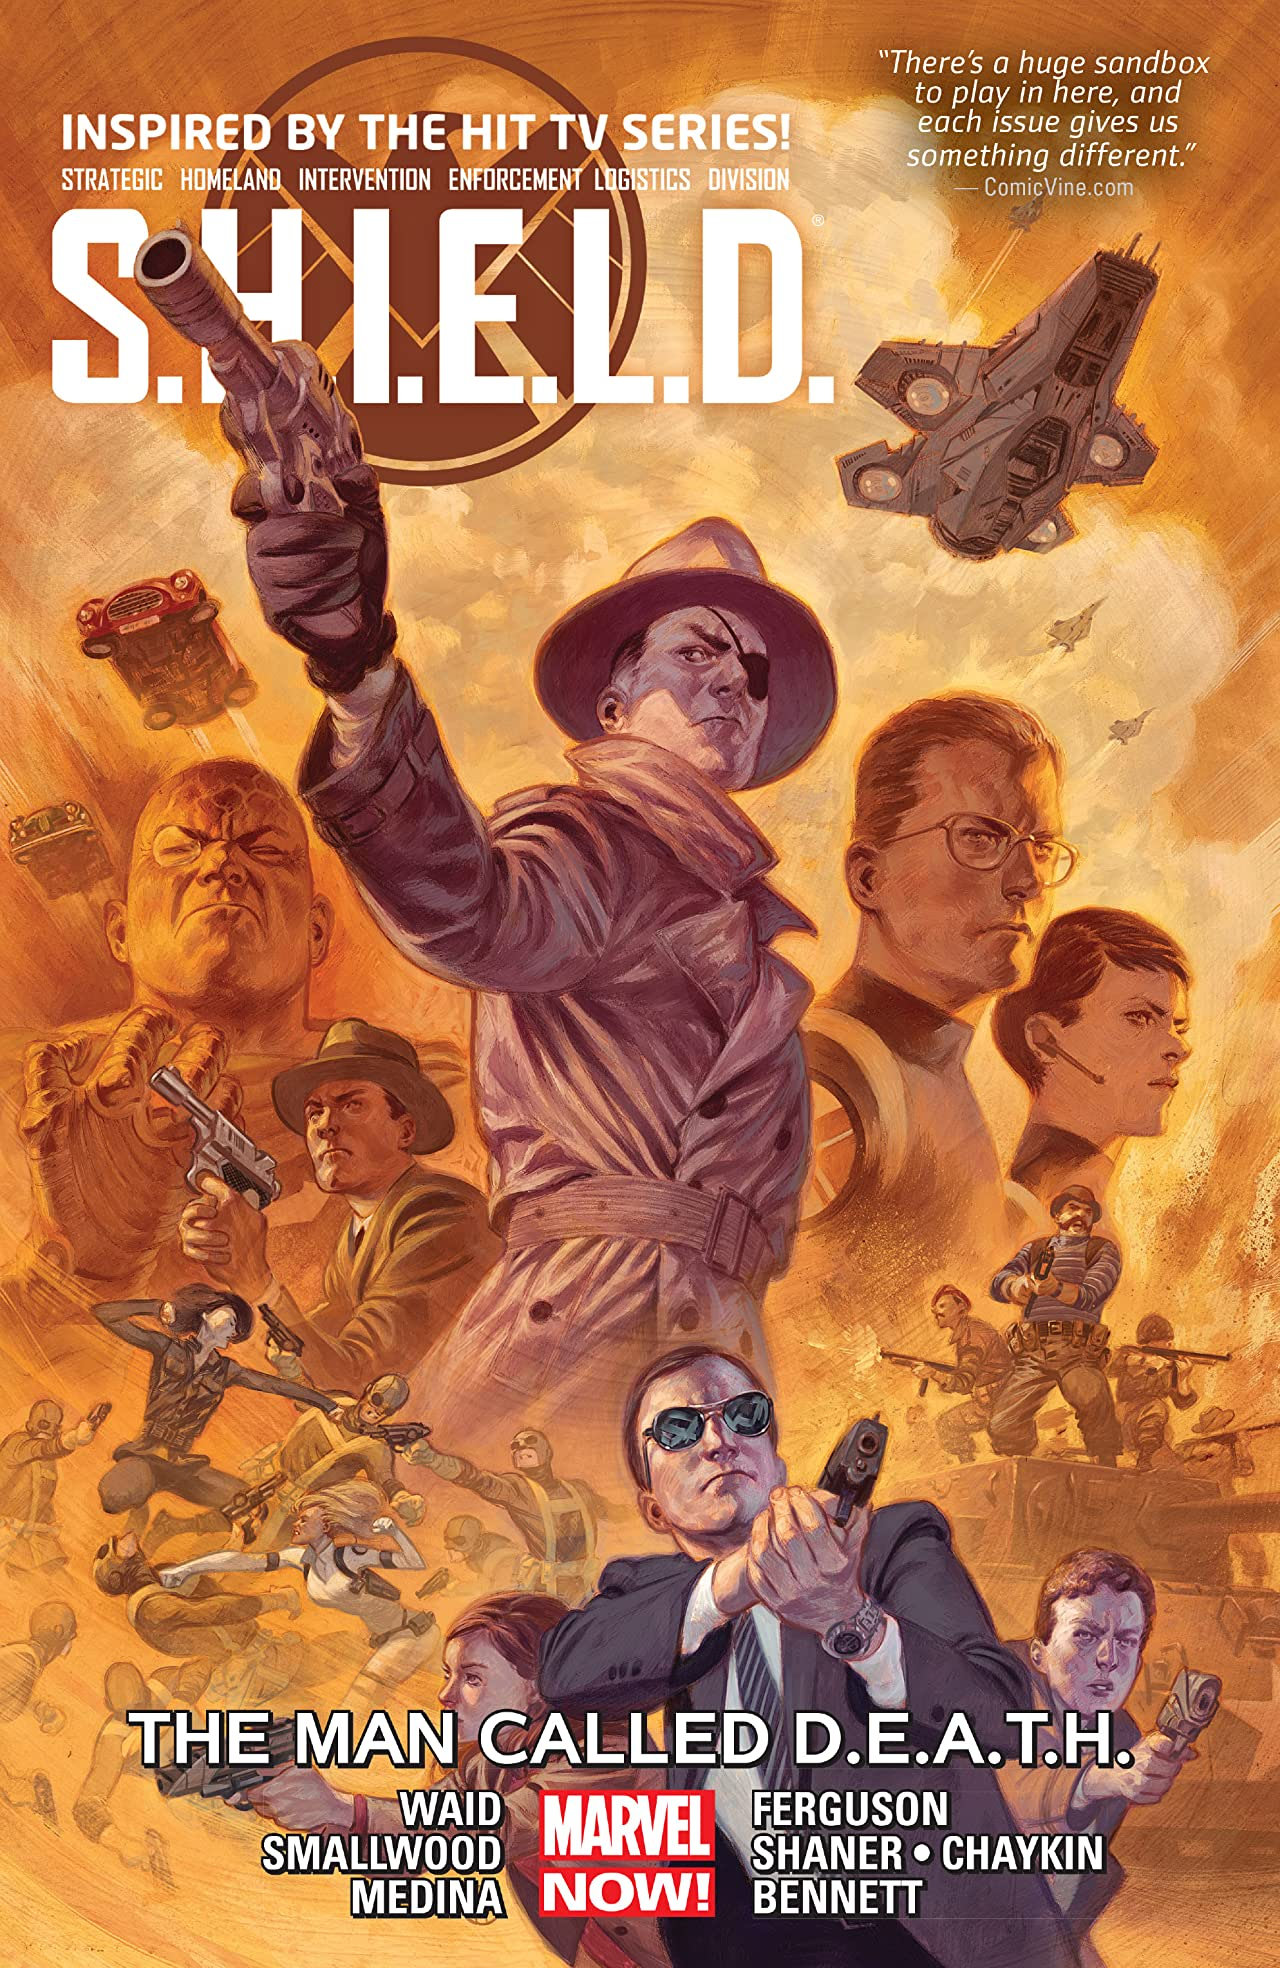 S.H.I.E.L.D. Vol. 2: The Man Called D.E.A.T.H.